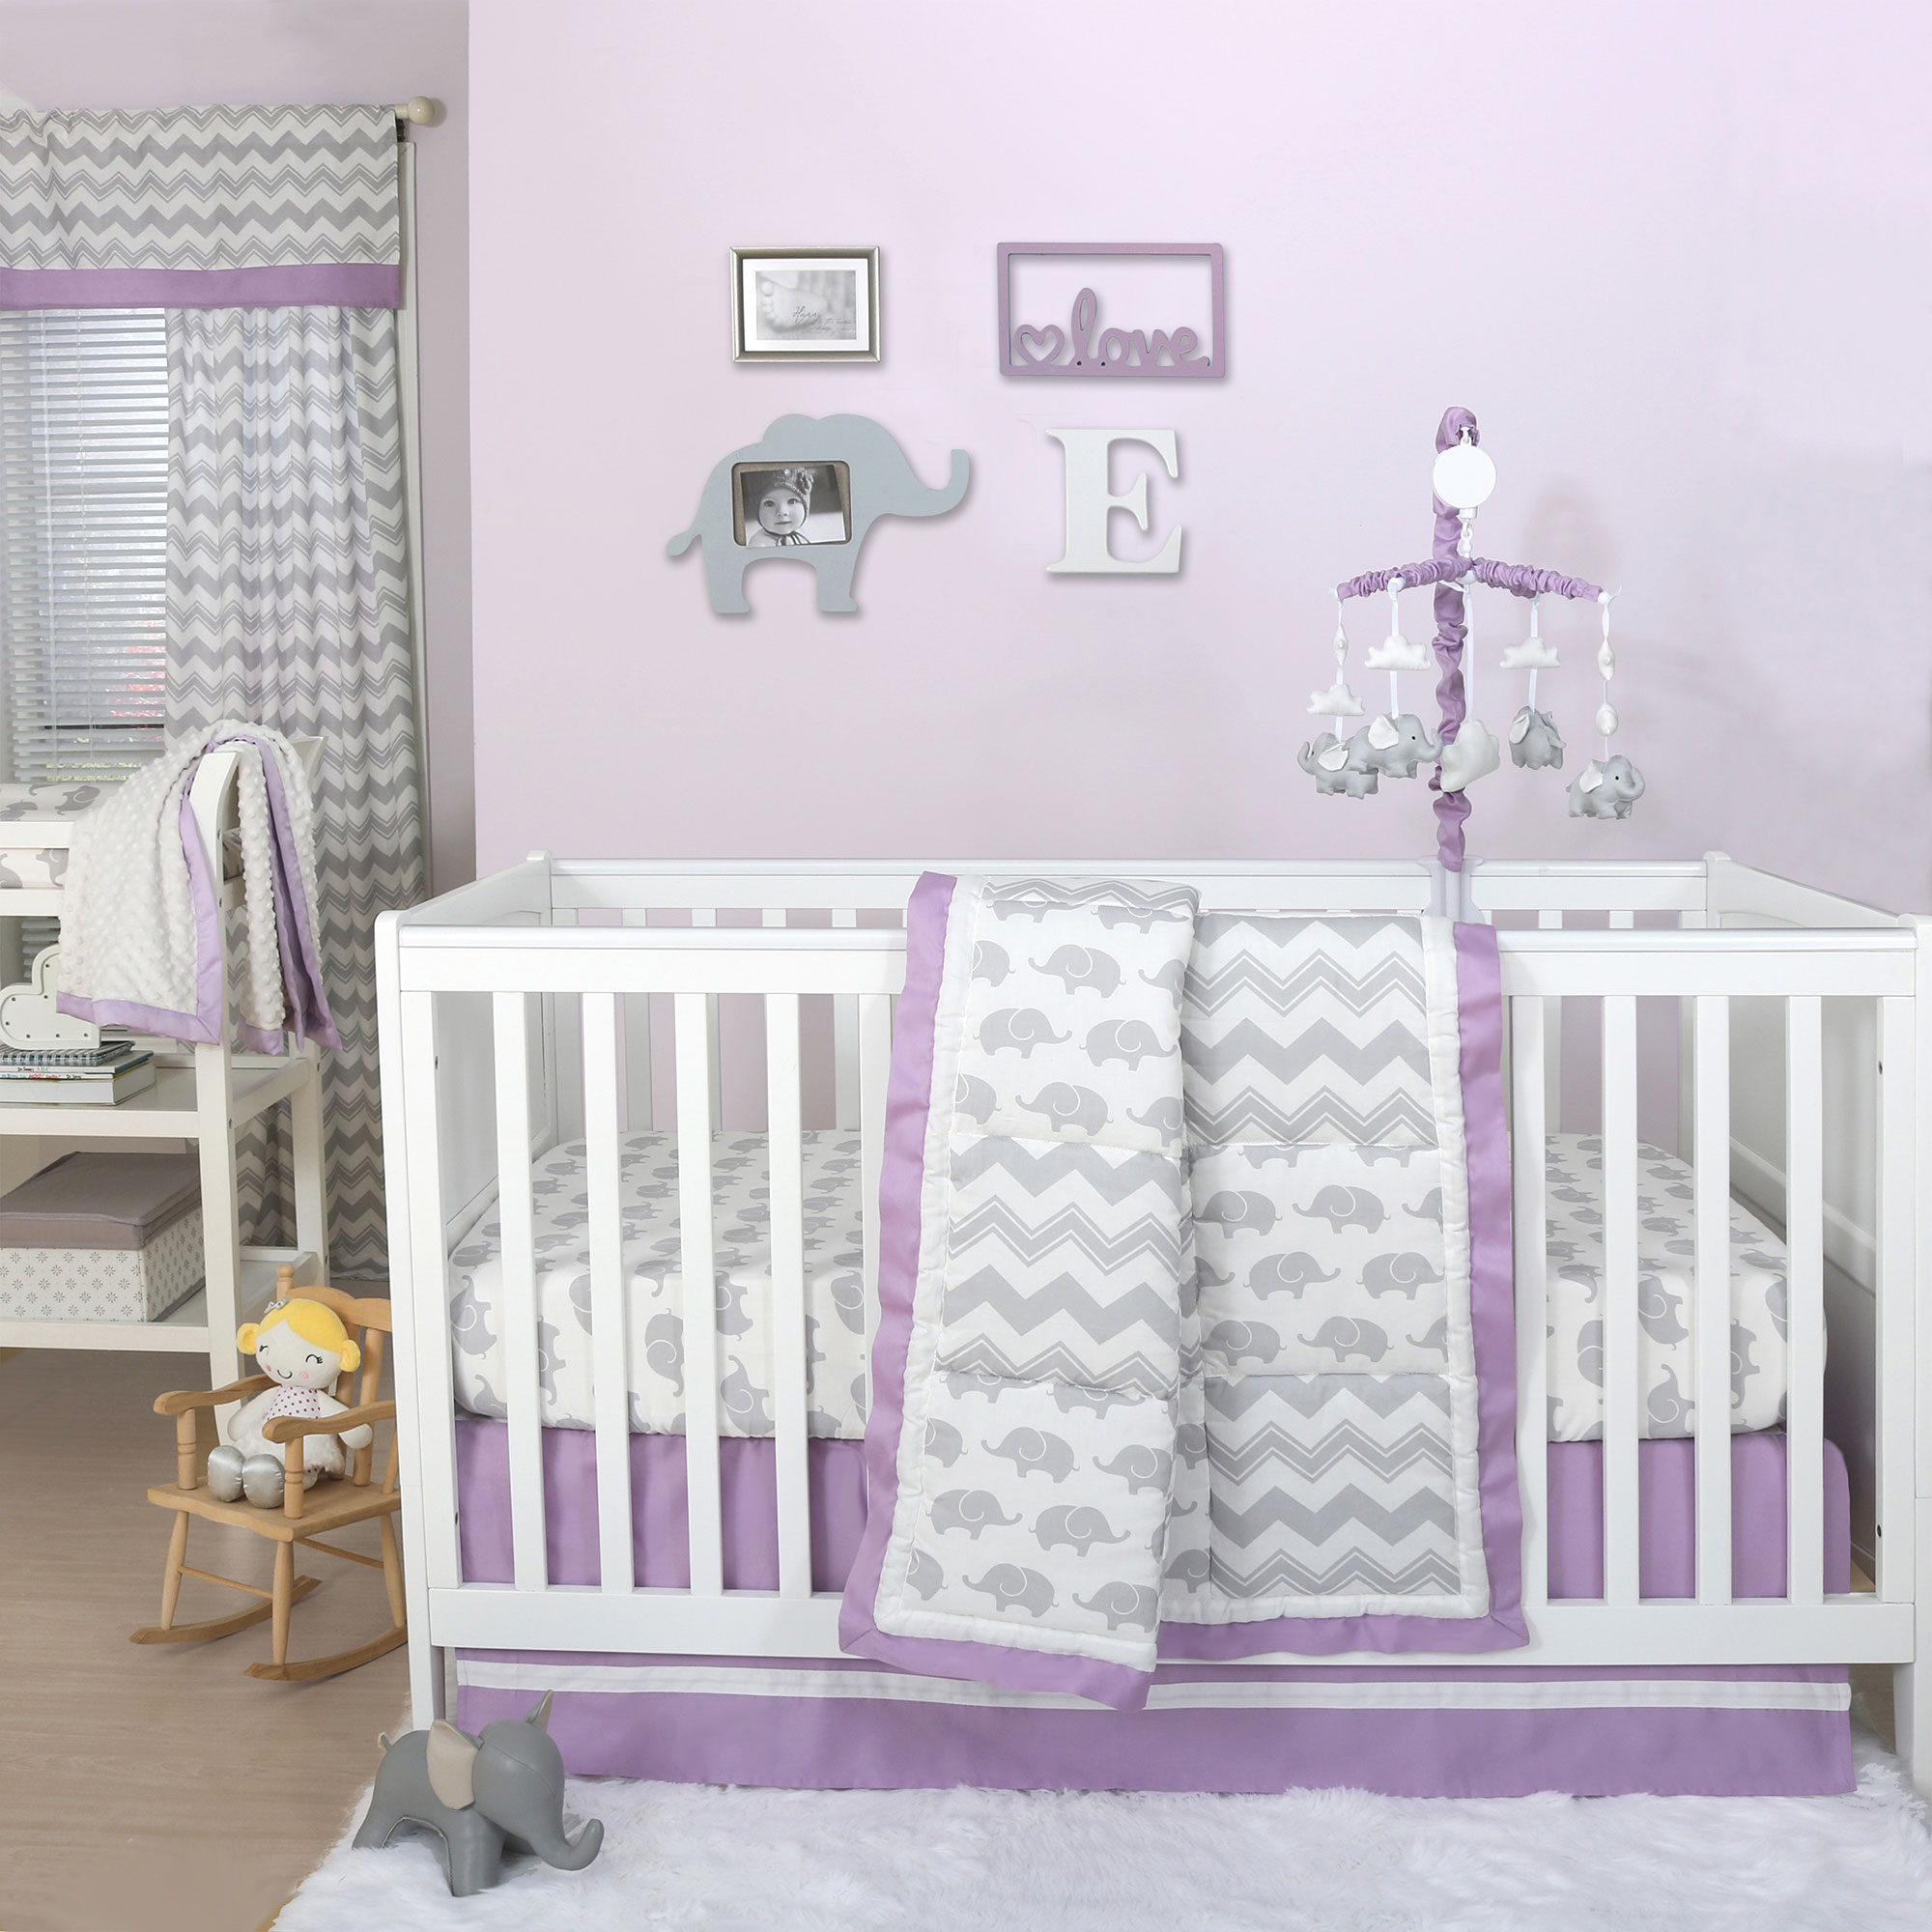 bsps cribs additional set msc sets bedding crib blankets